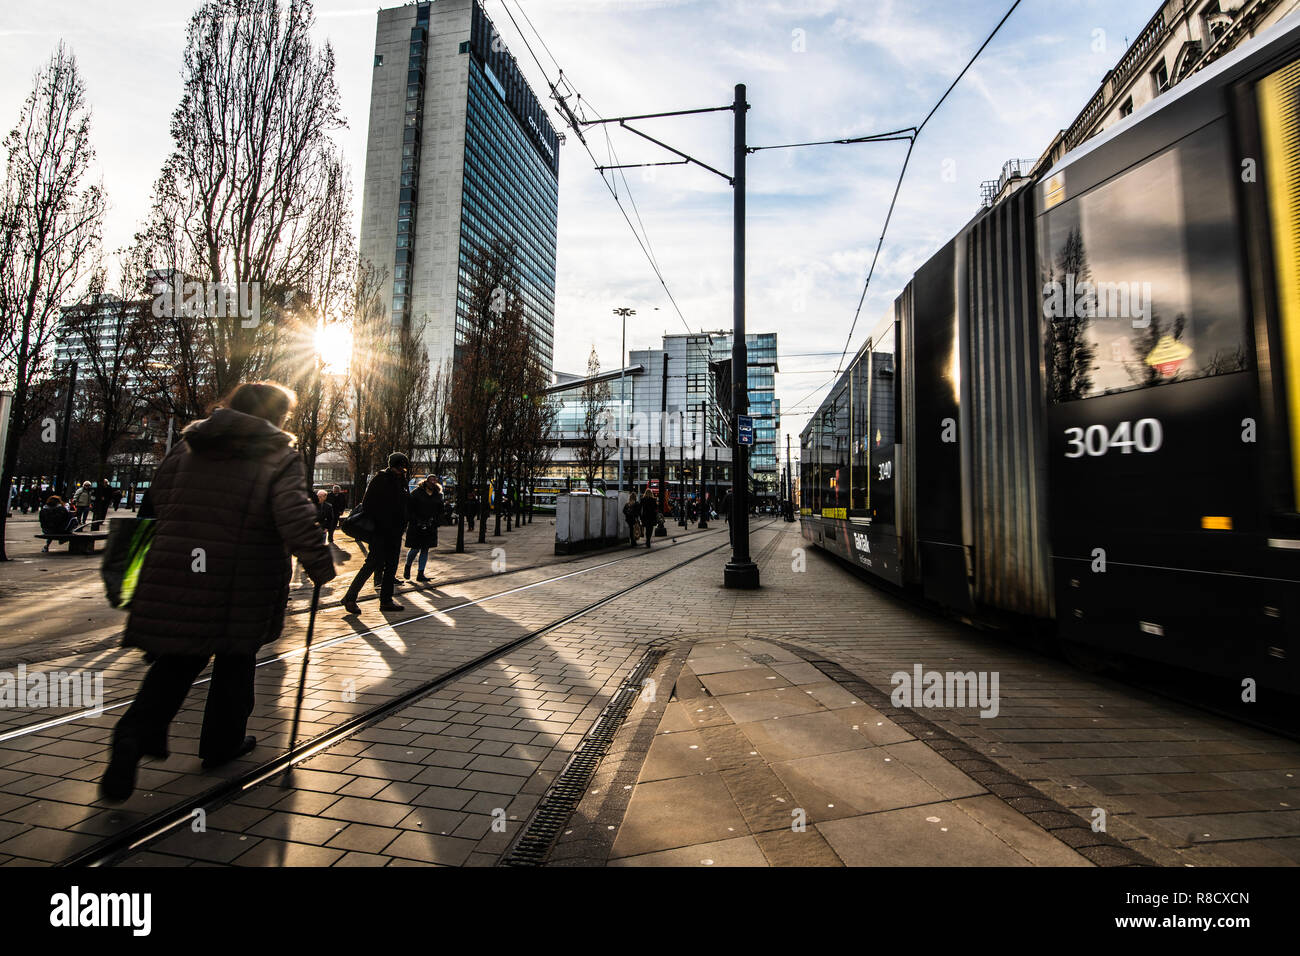 Piccadilly Gardens transport hub in Central Manchester UK - Stock Image